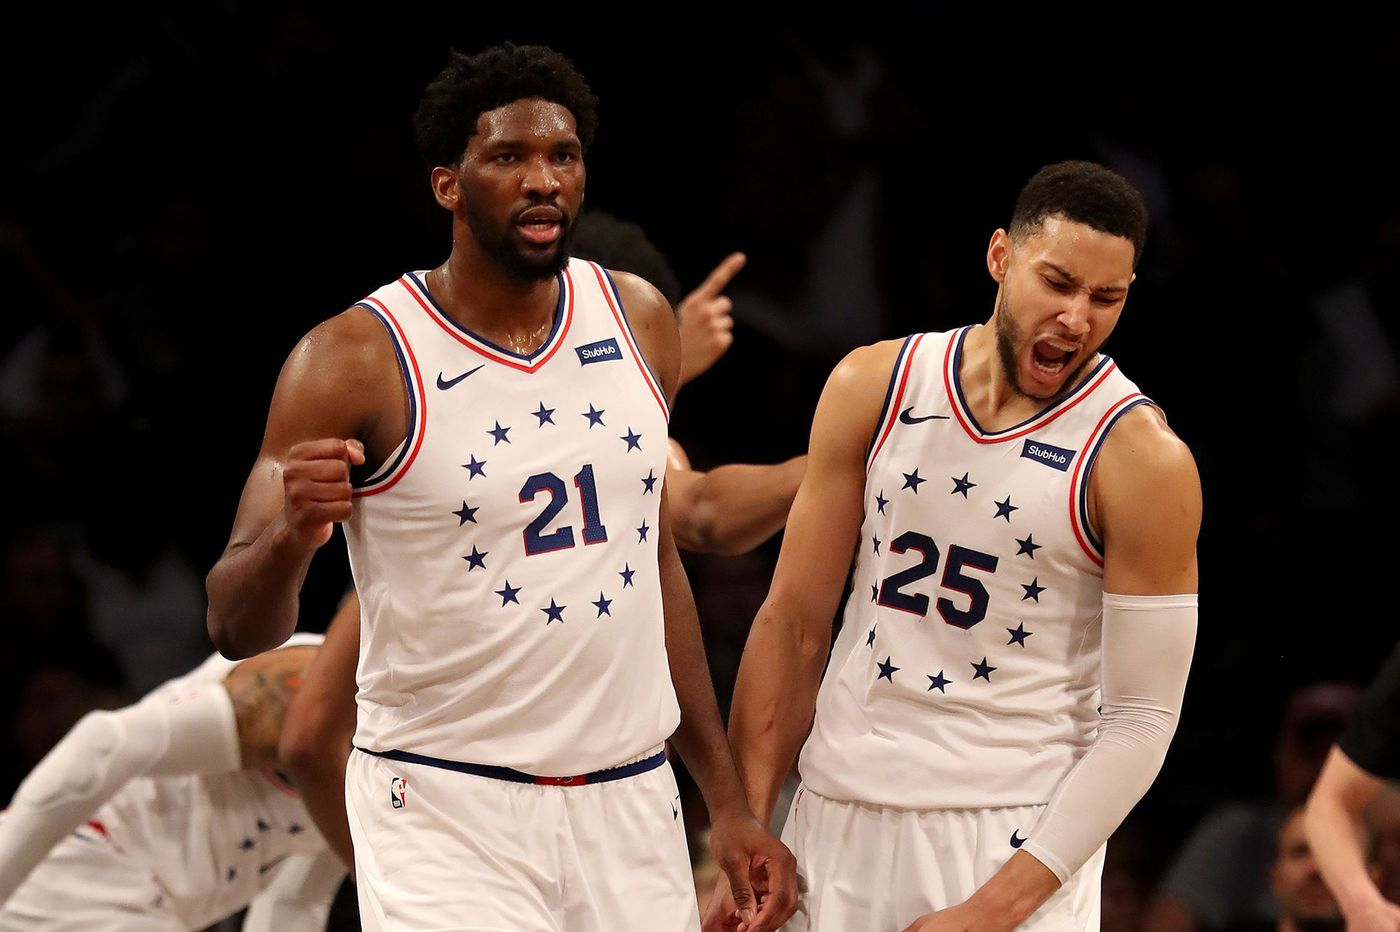 Ben Simmons and Joel Embiid owned the moment in Sixers-Nets Game 4. That's a big deal for this team | David Murphy